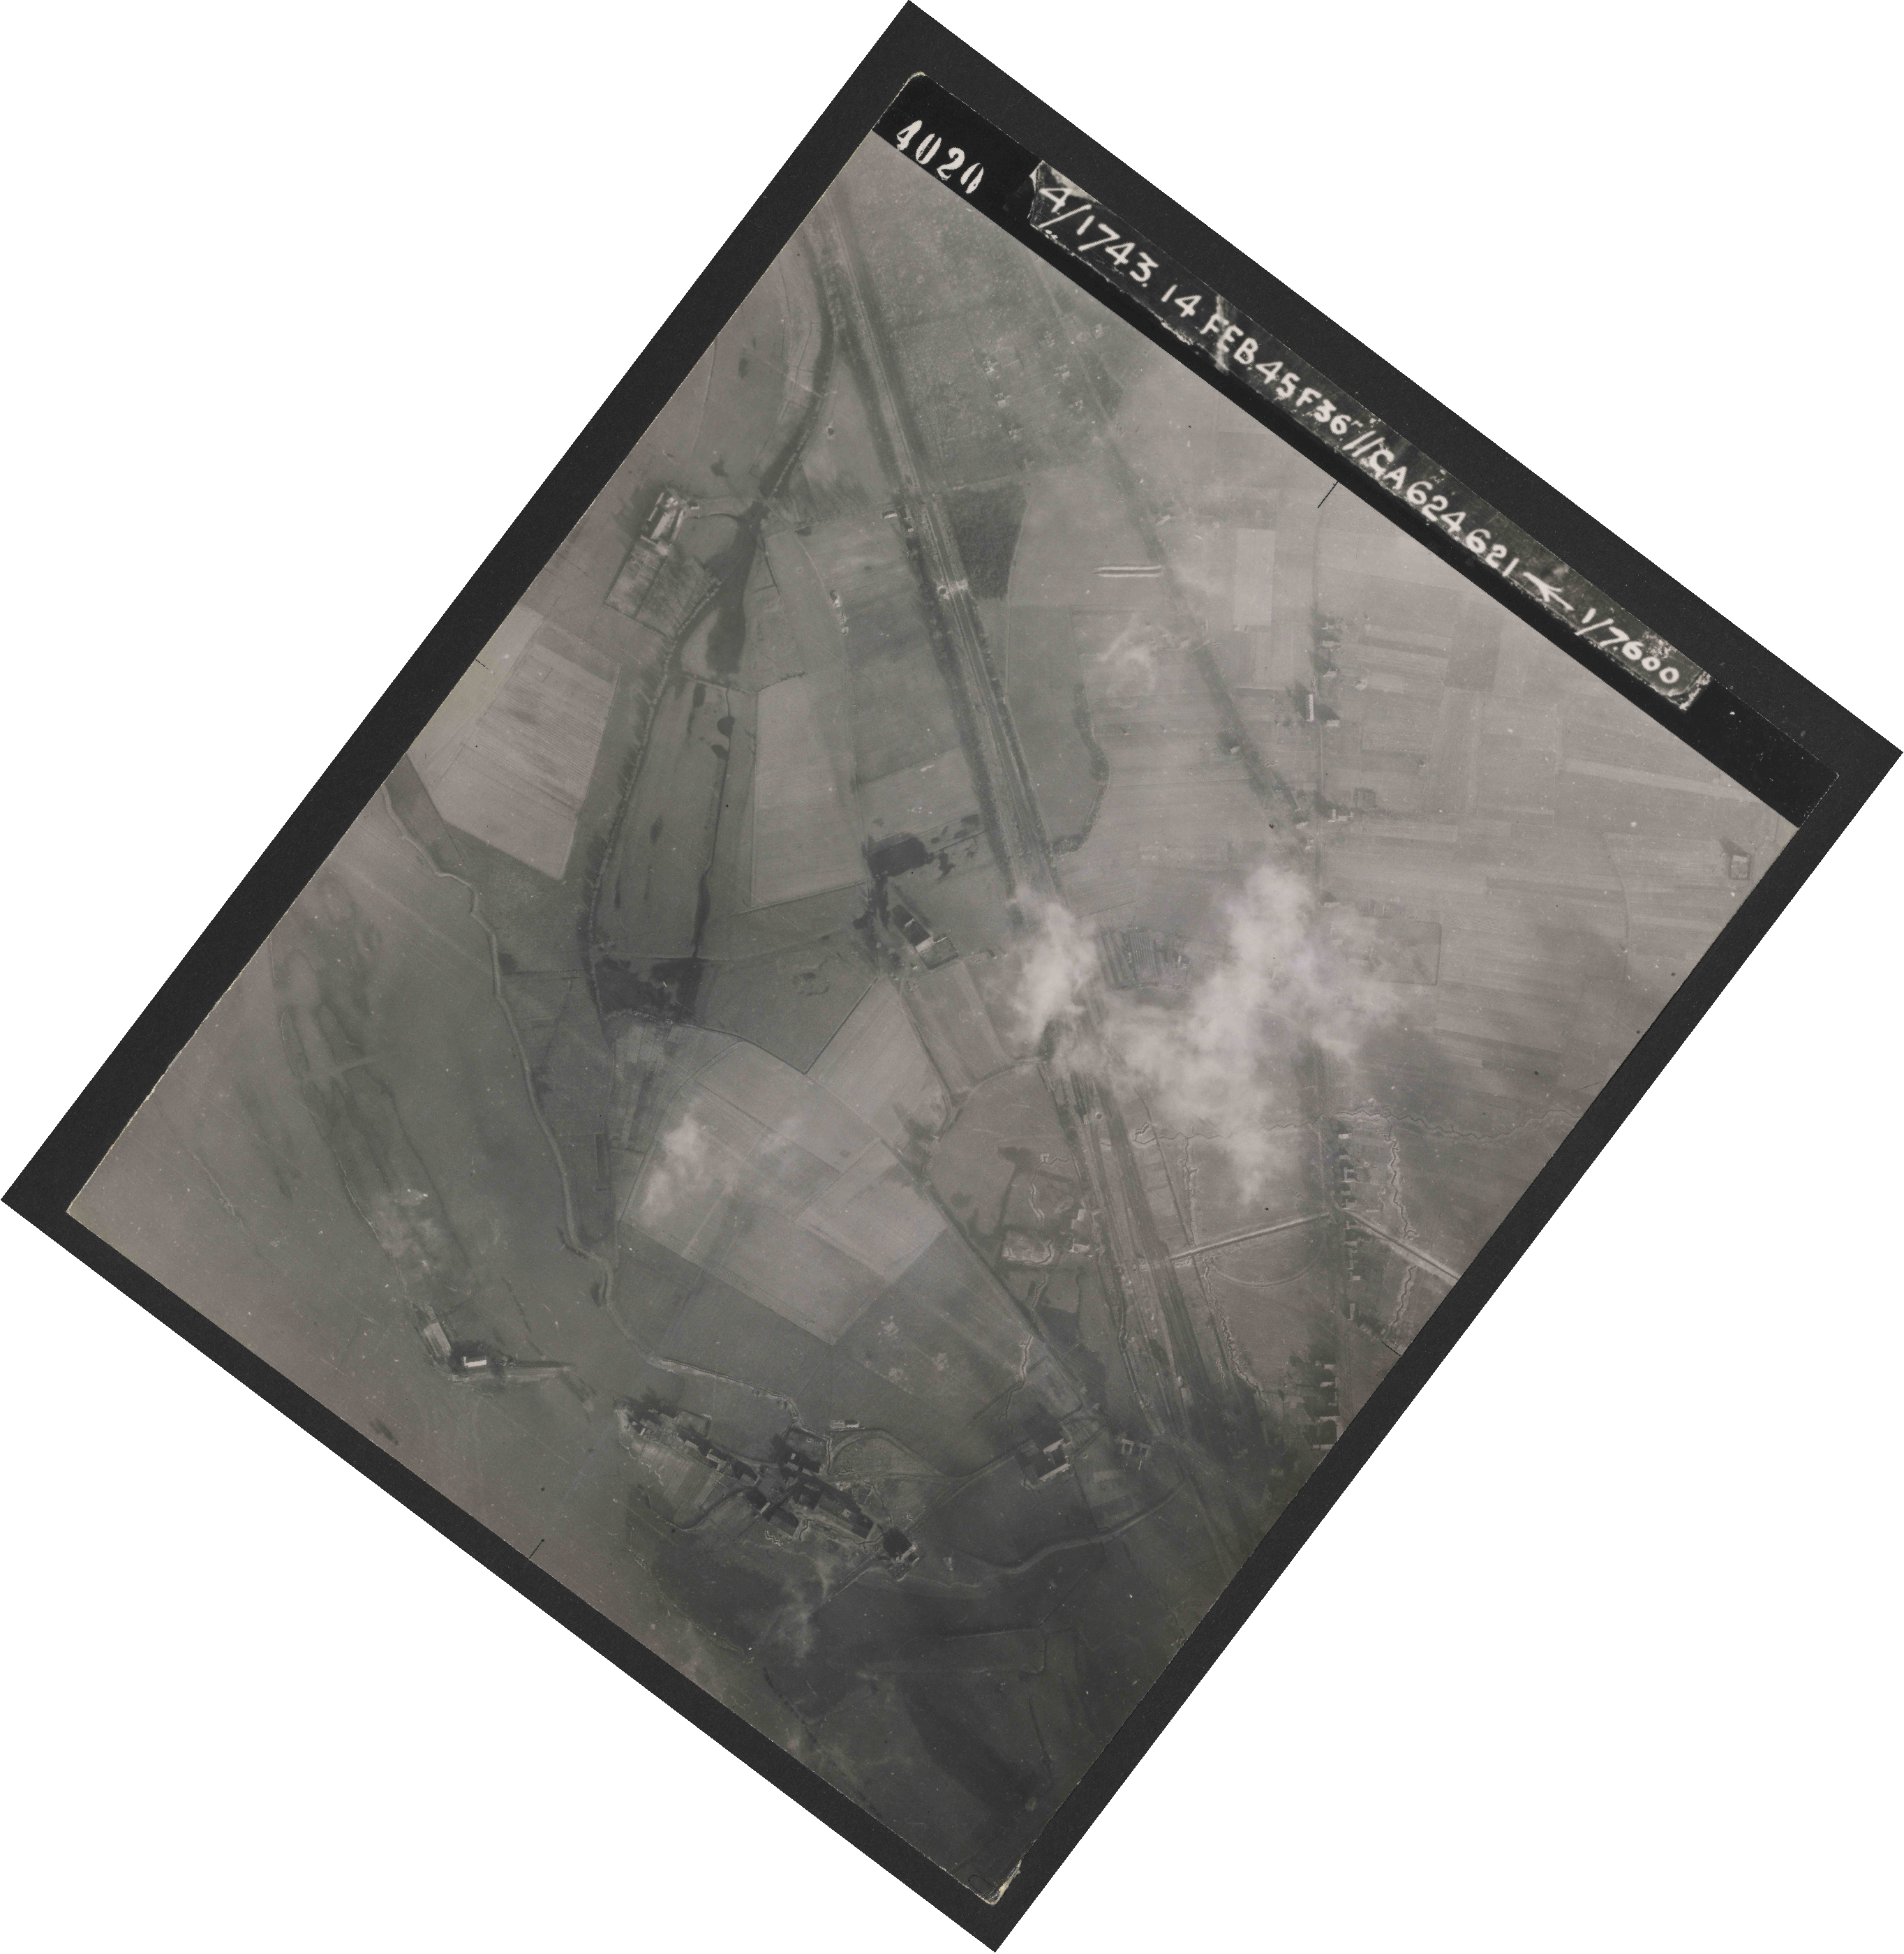 Collection RAF aerial photos 1940-1945 - flight 323, run 02, photo 4020